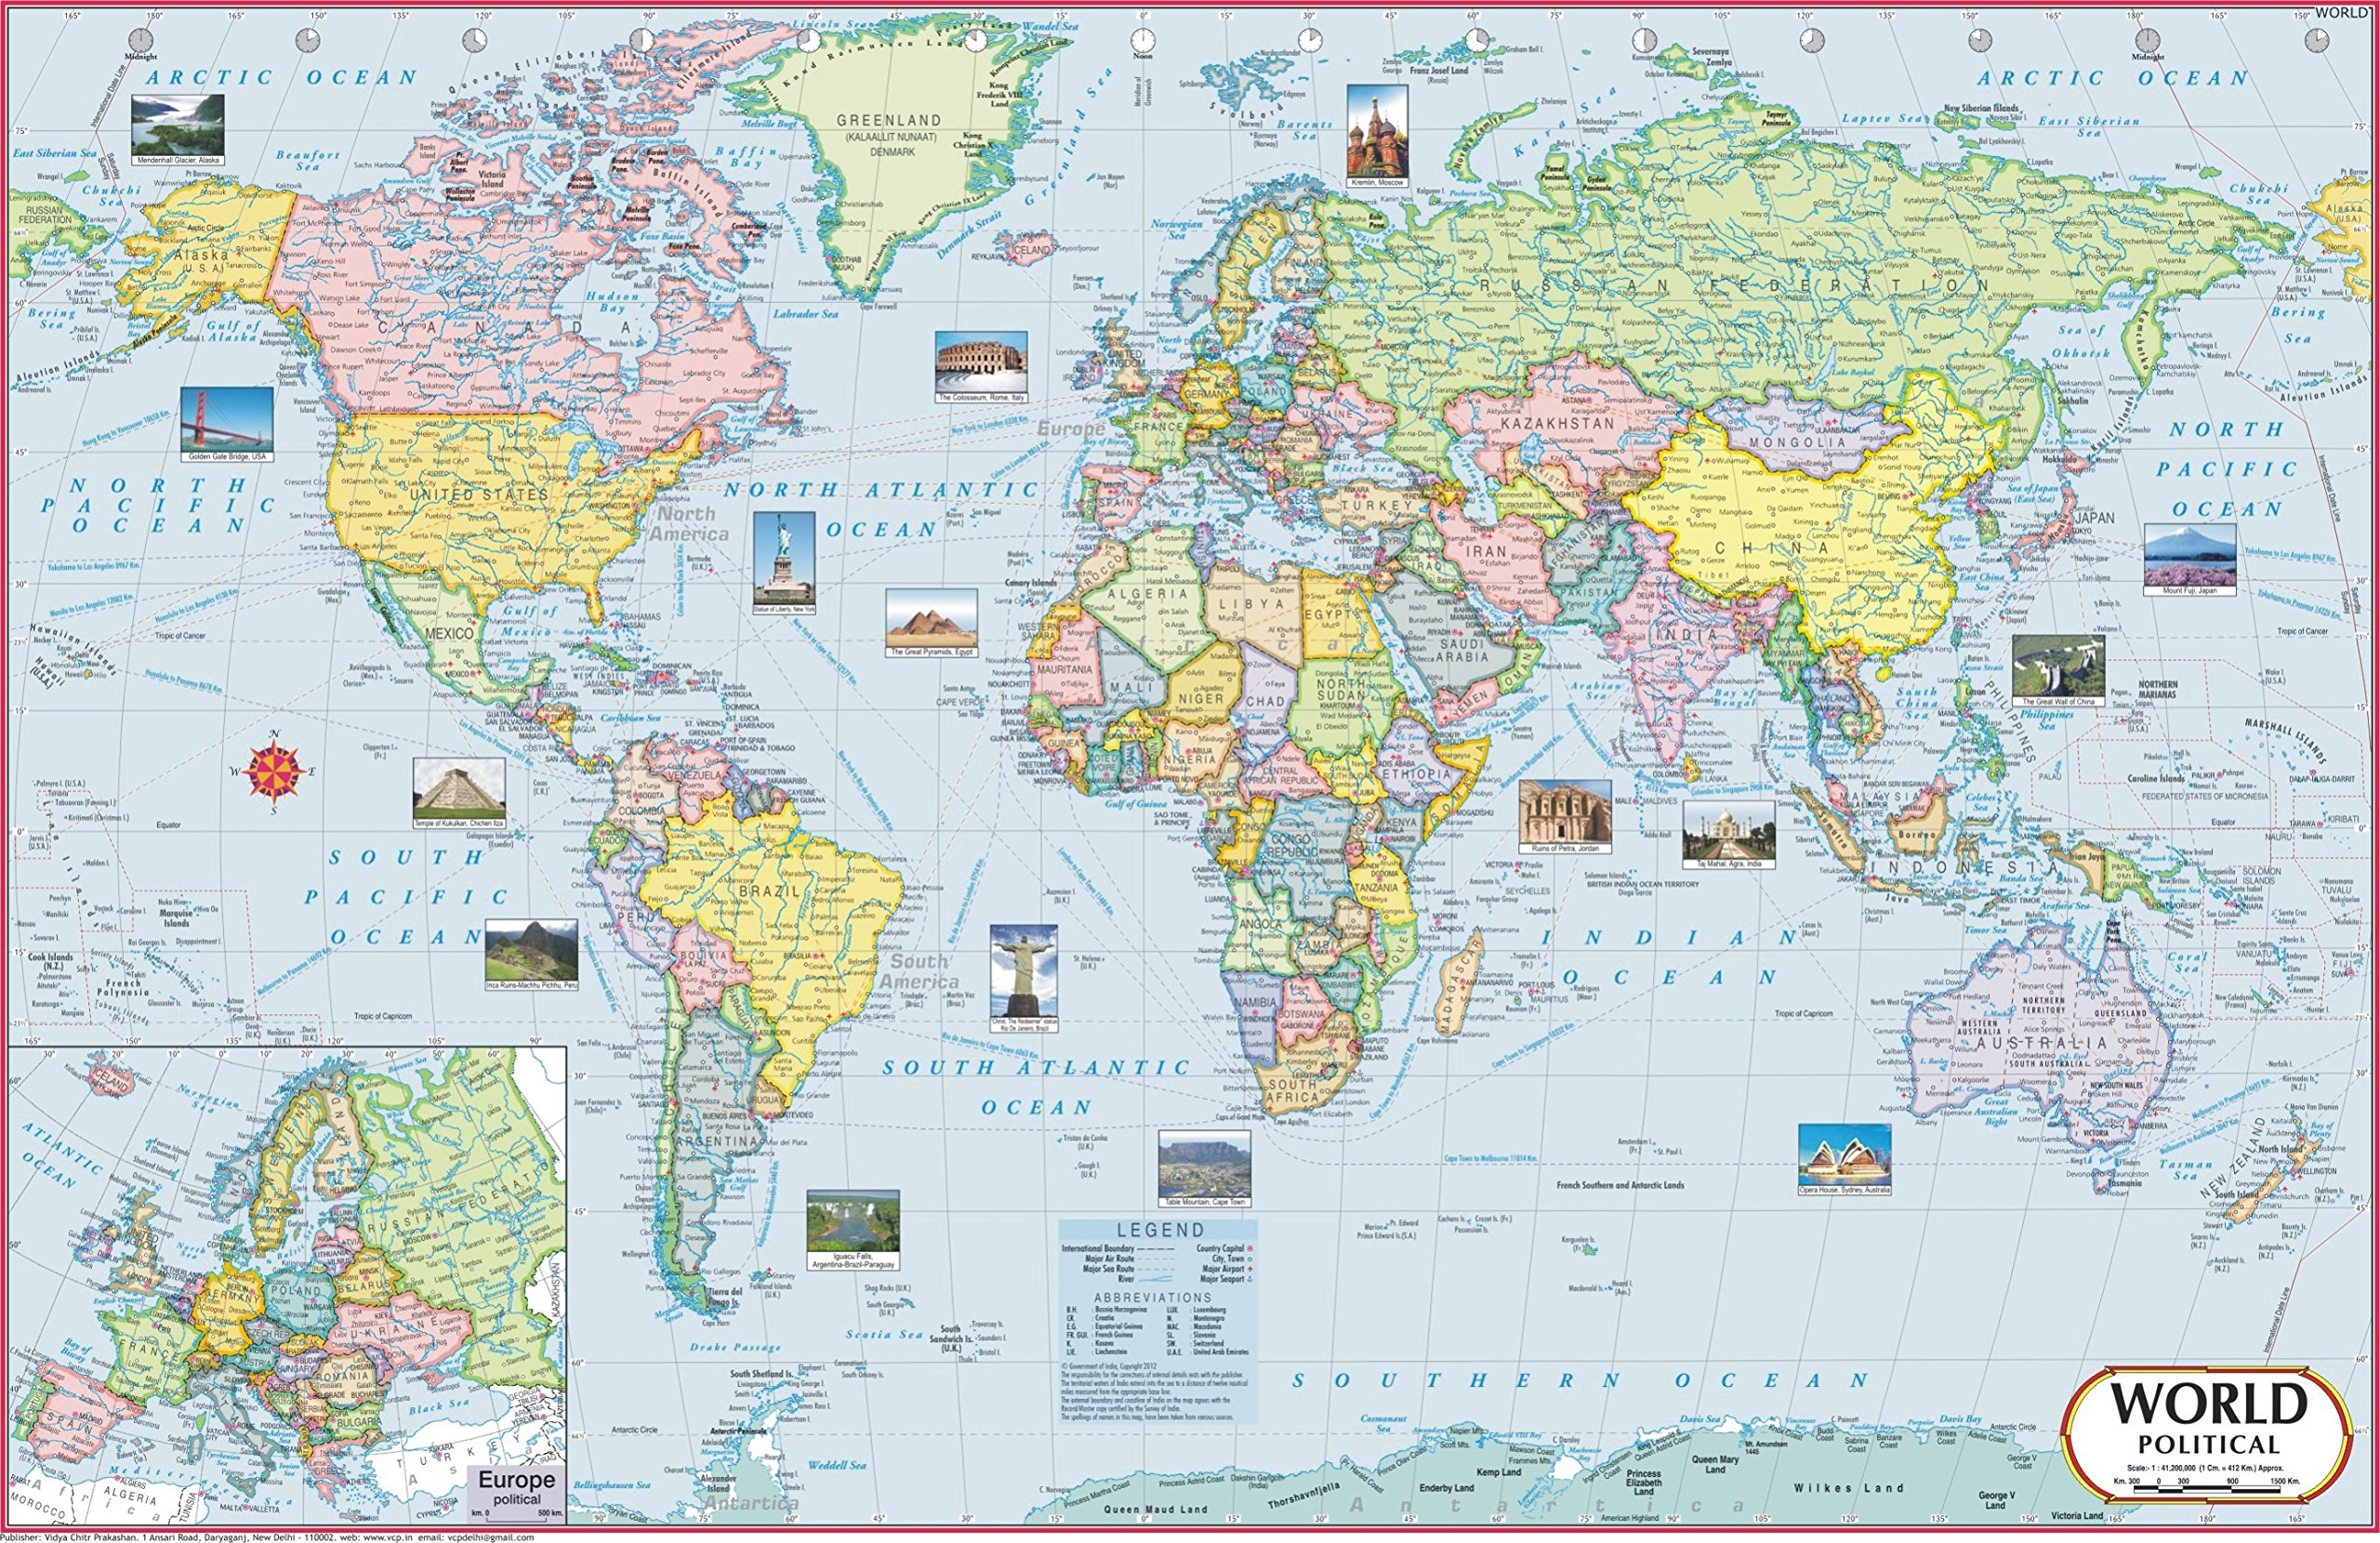 Travel maps atlas books buy books on travel maps atlases world map political 70 x 50 cm world map gumiabroncs Images